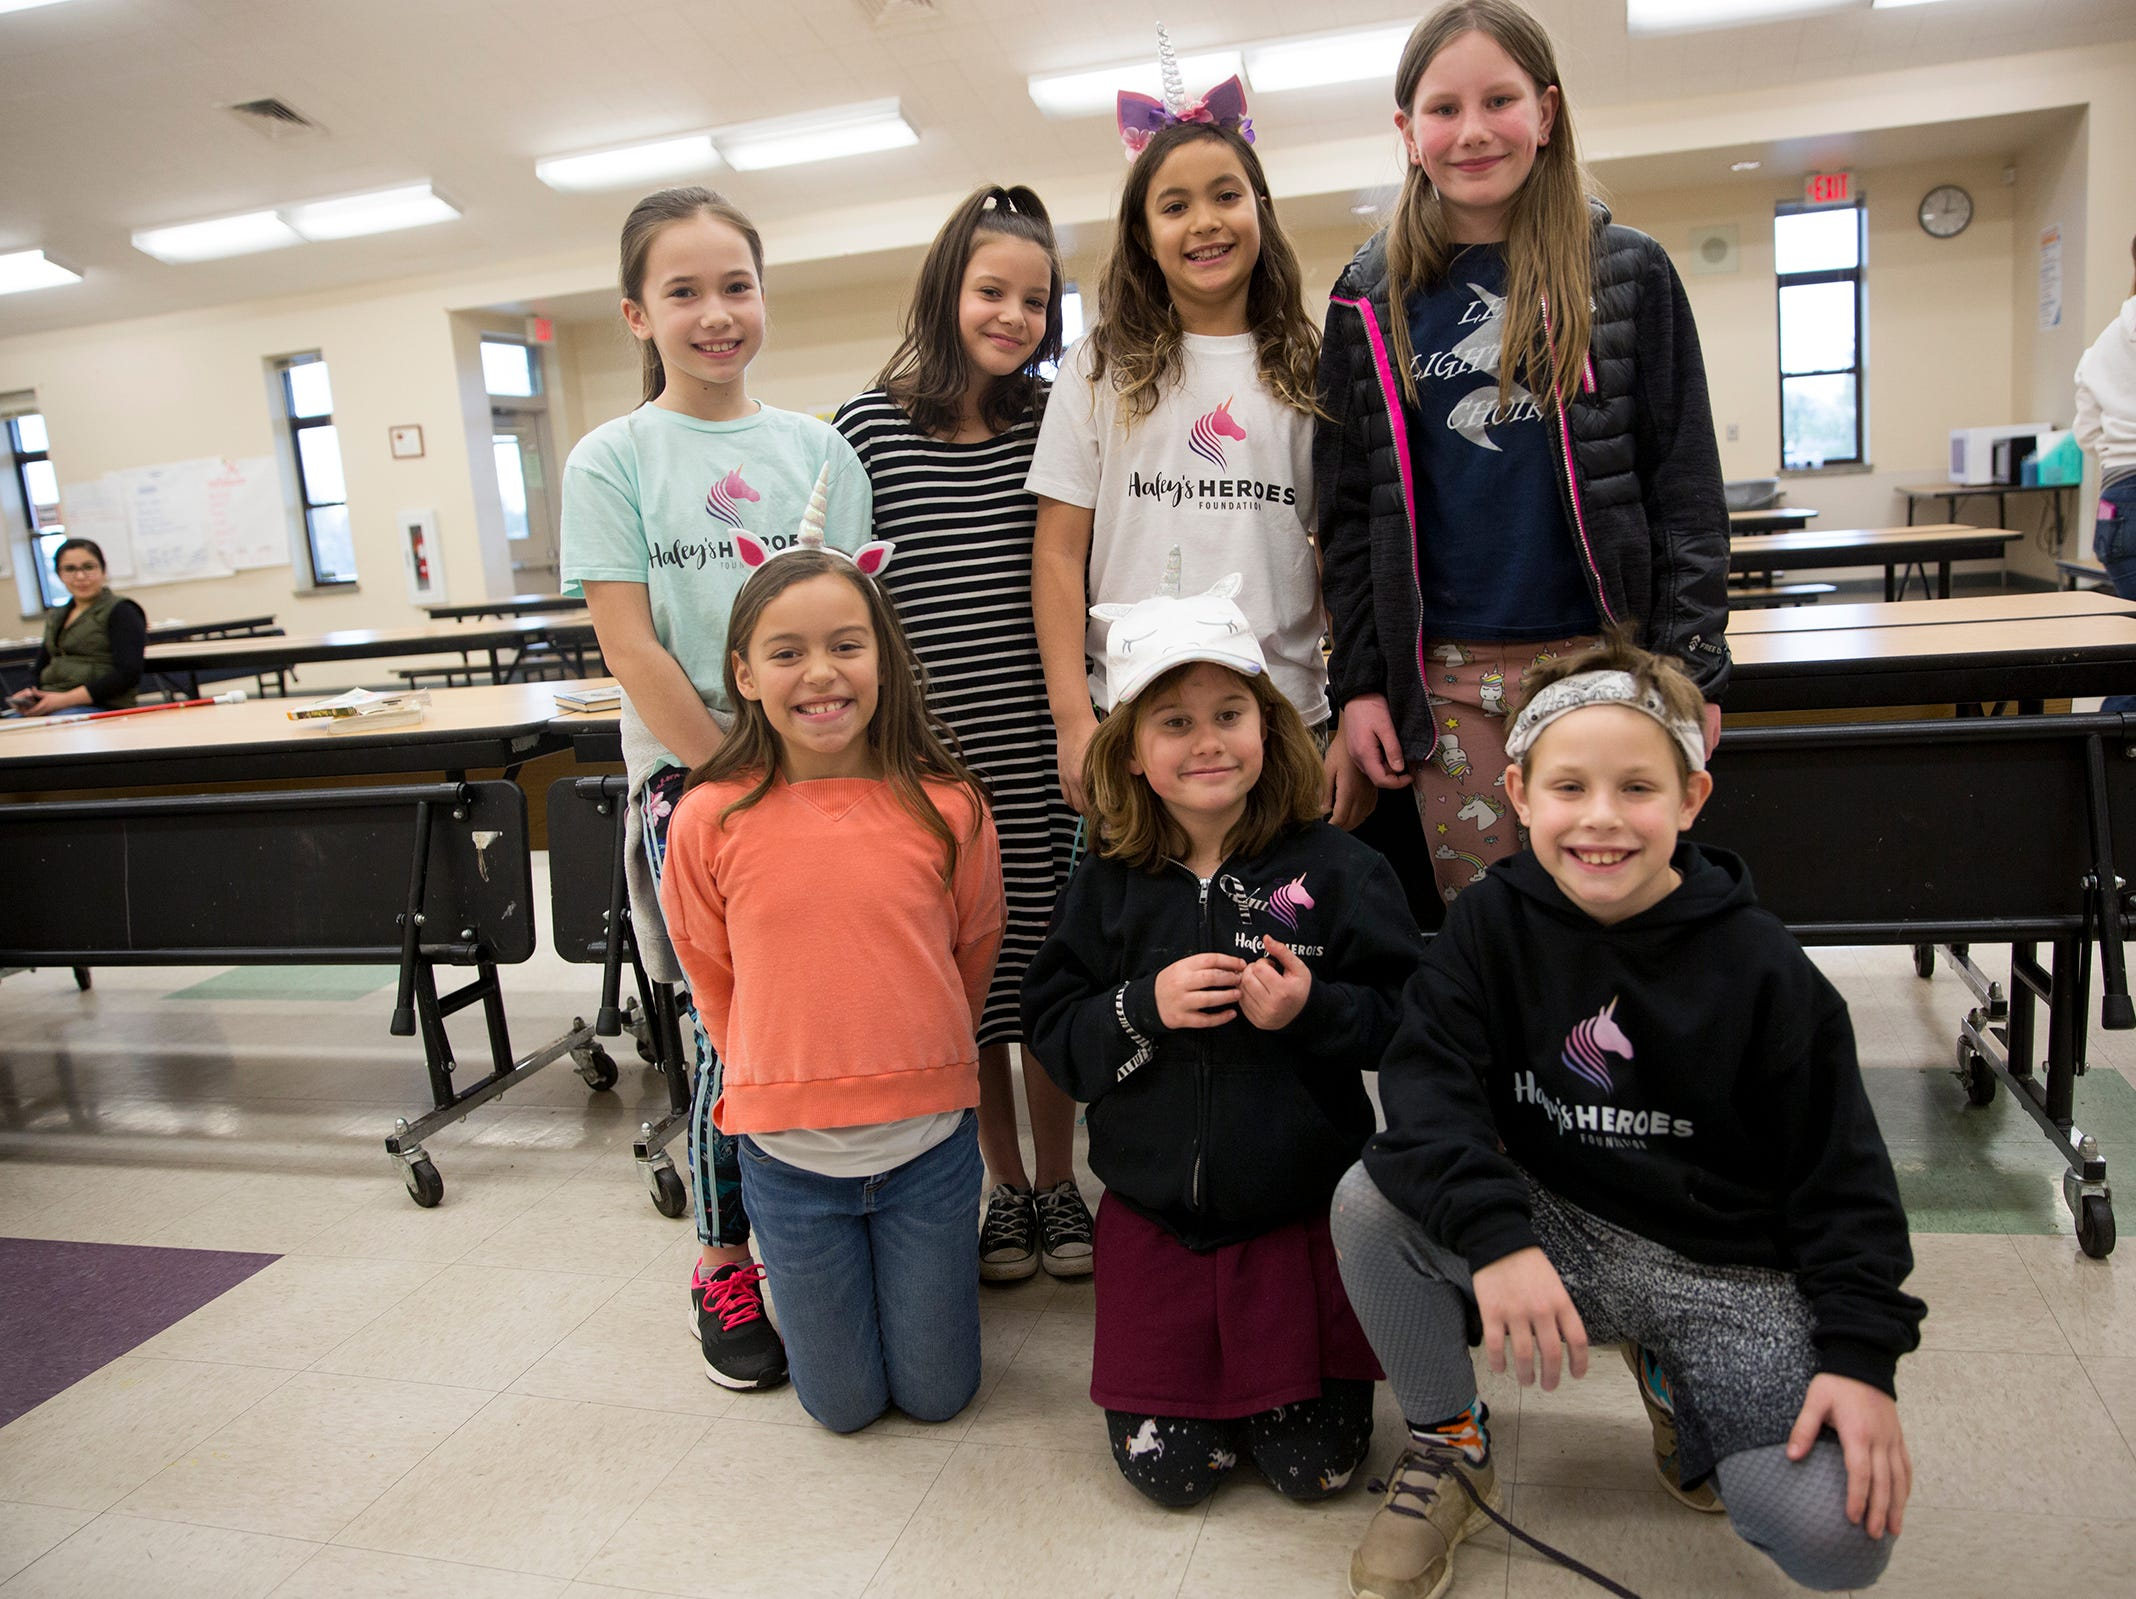 Haley Pollman and her classmates on rare disease day at Lee Elementary School in Salem on Thursday, Feb. 28, 2019. Students got to dress up as unicorns and zebras for the day.